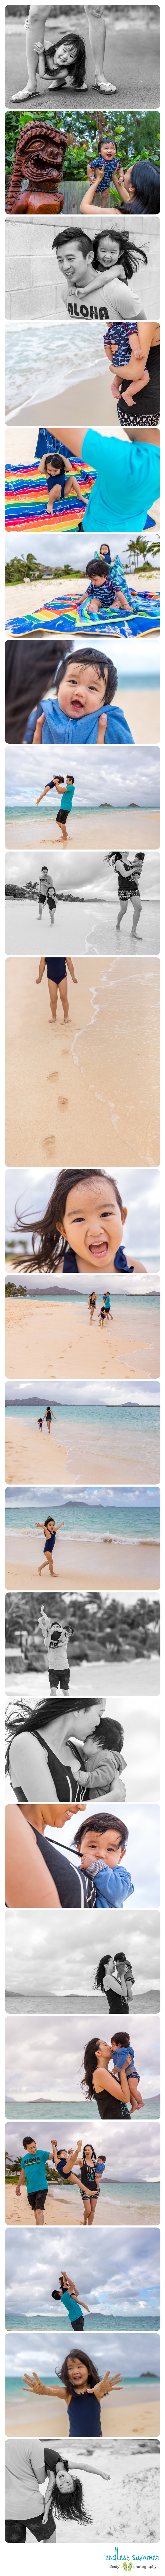 Oahu_Documentary_Family_Photography